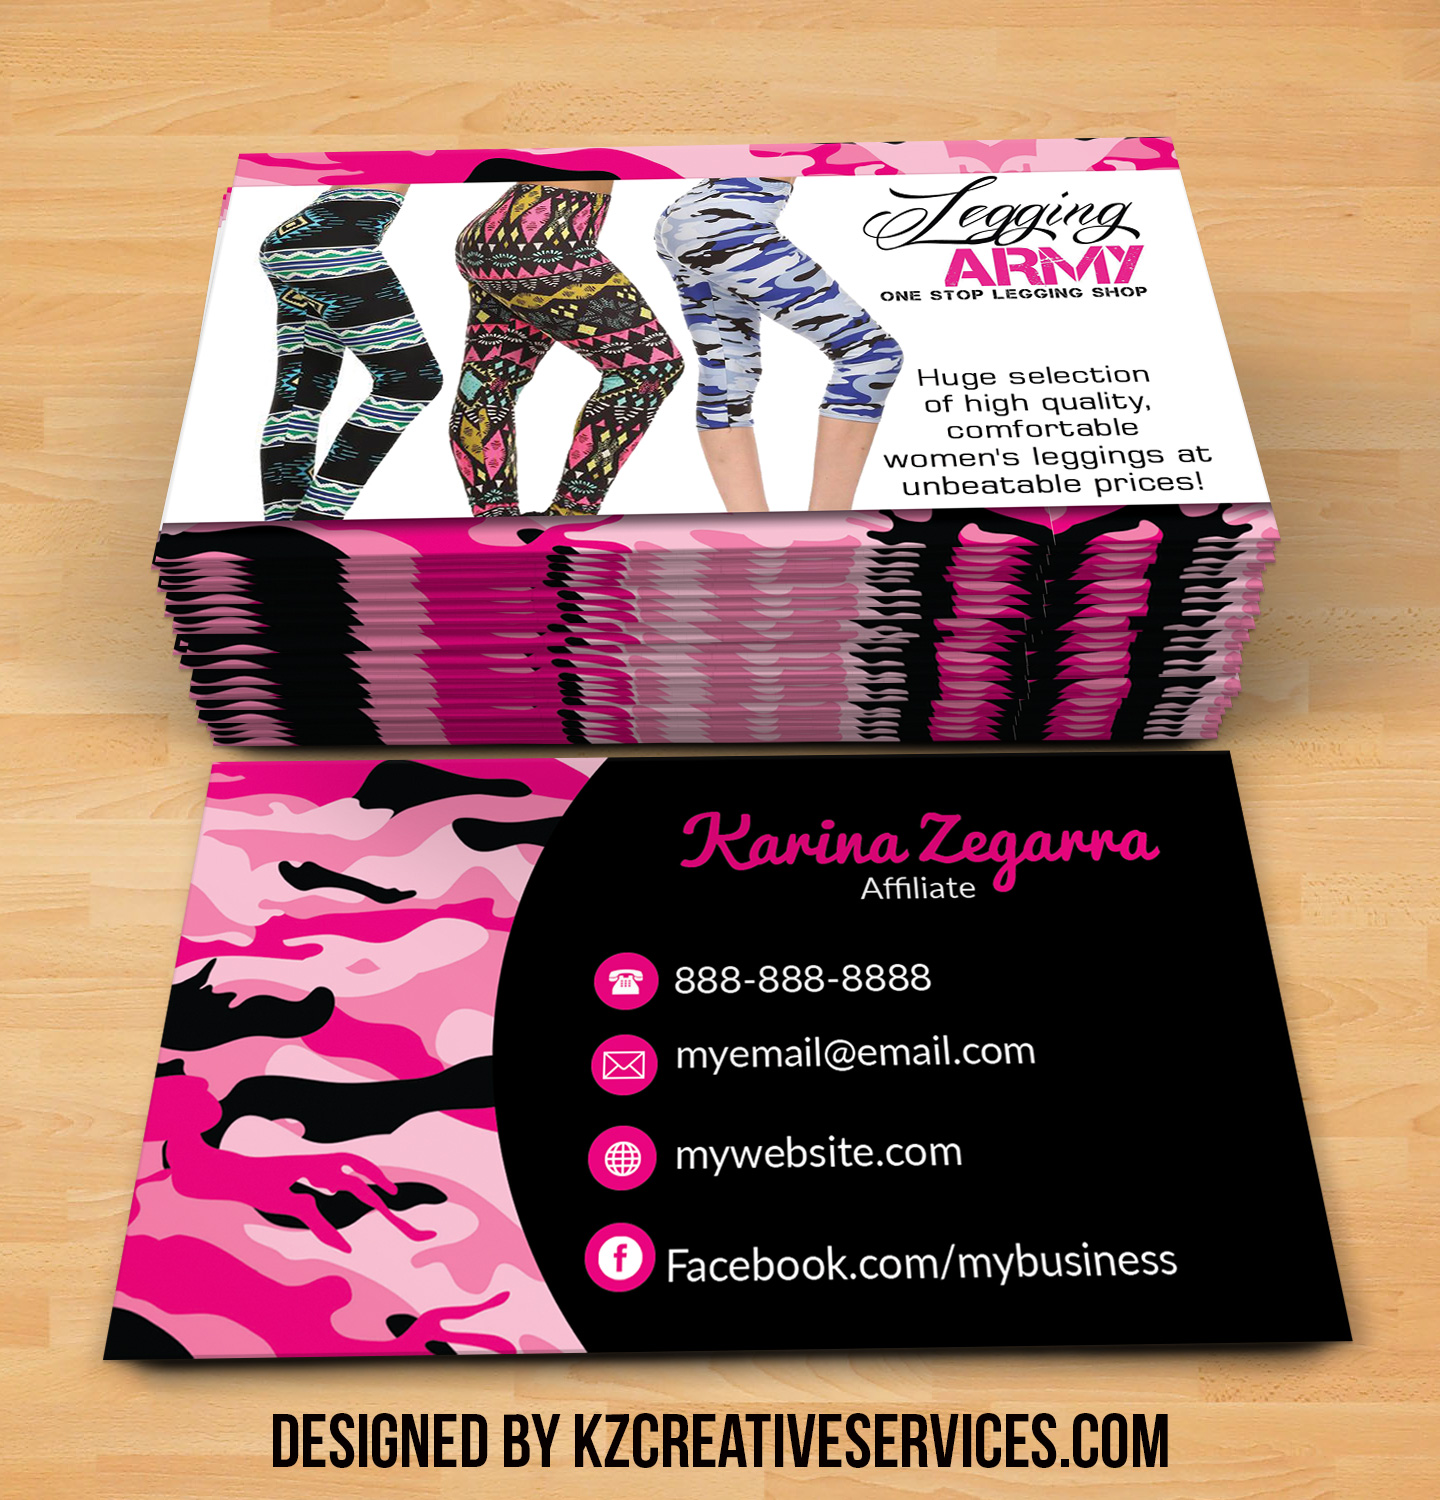 Legging Army Business Cards style 2 · KZ Creative Services